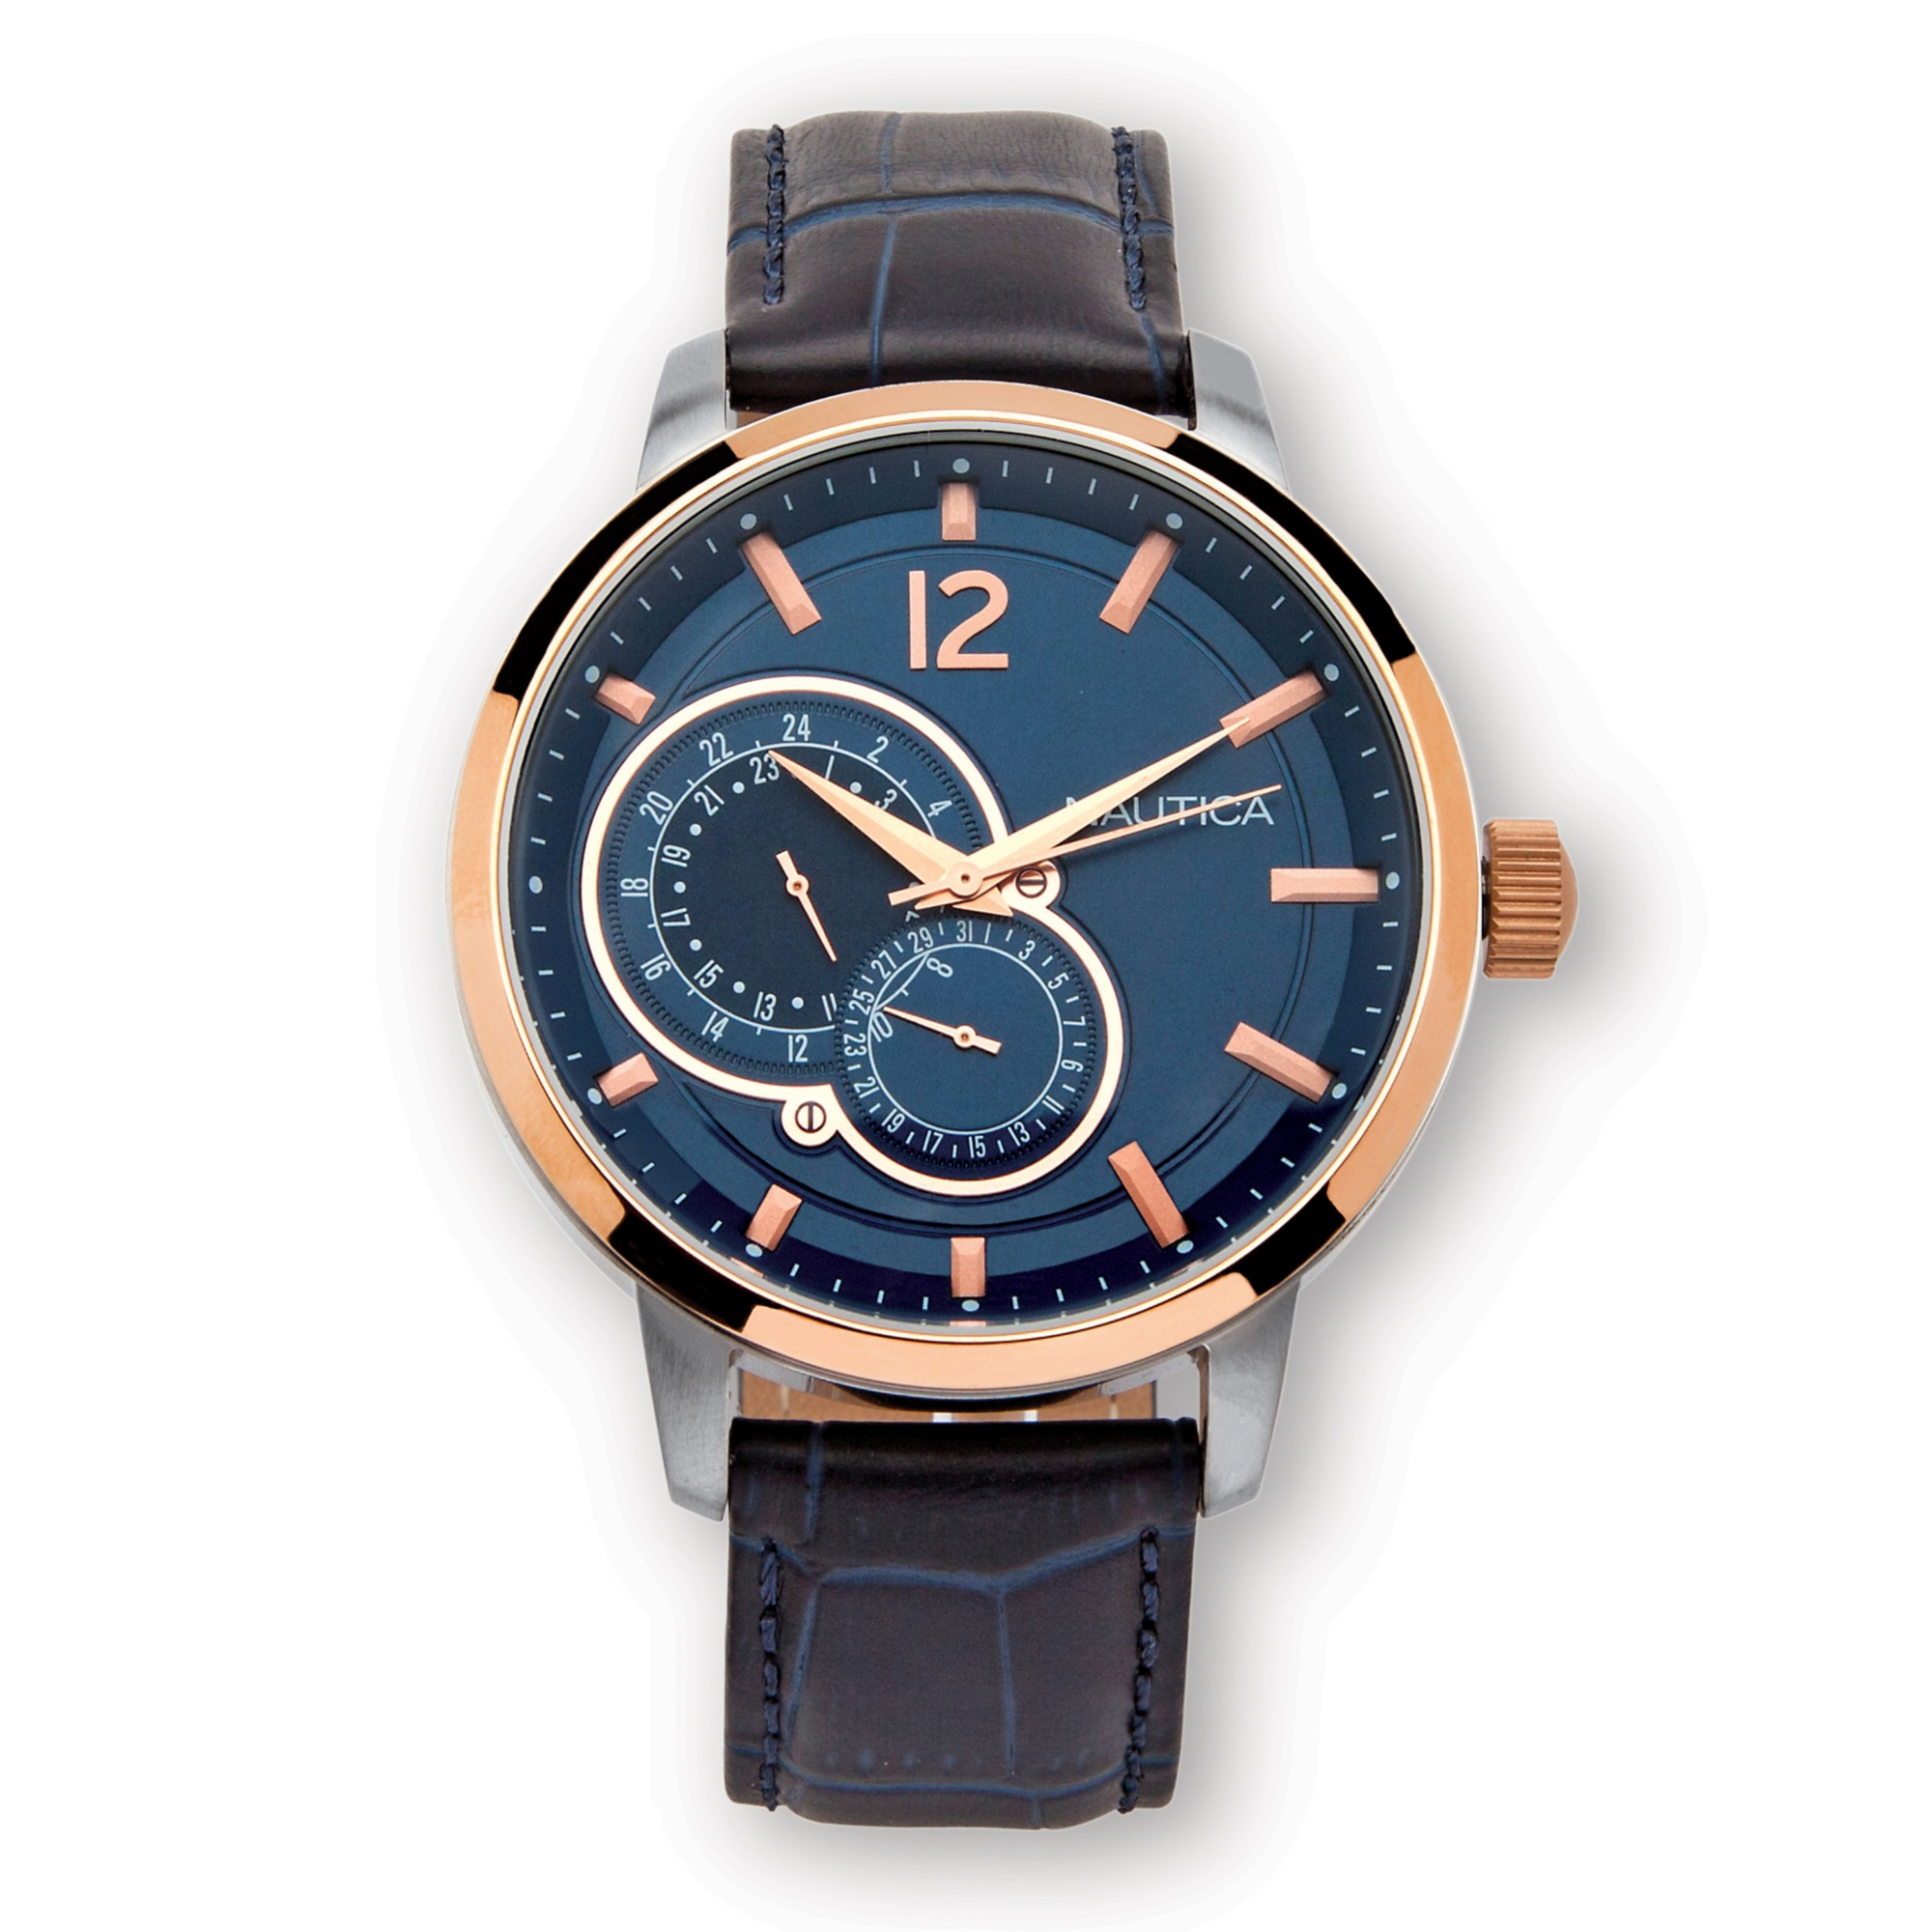 Men 39 s nautica water resistant watch in stainless steel 8 length leather band at palmbeach jewelry for Watches clearance